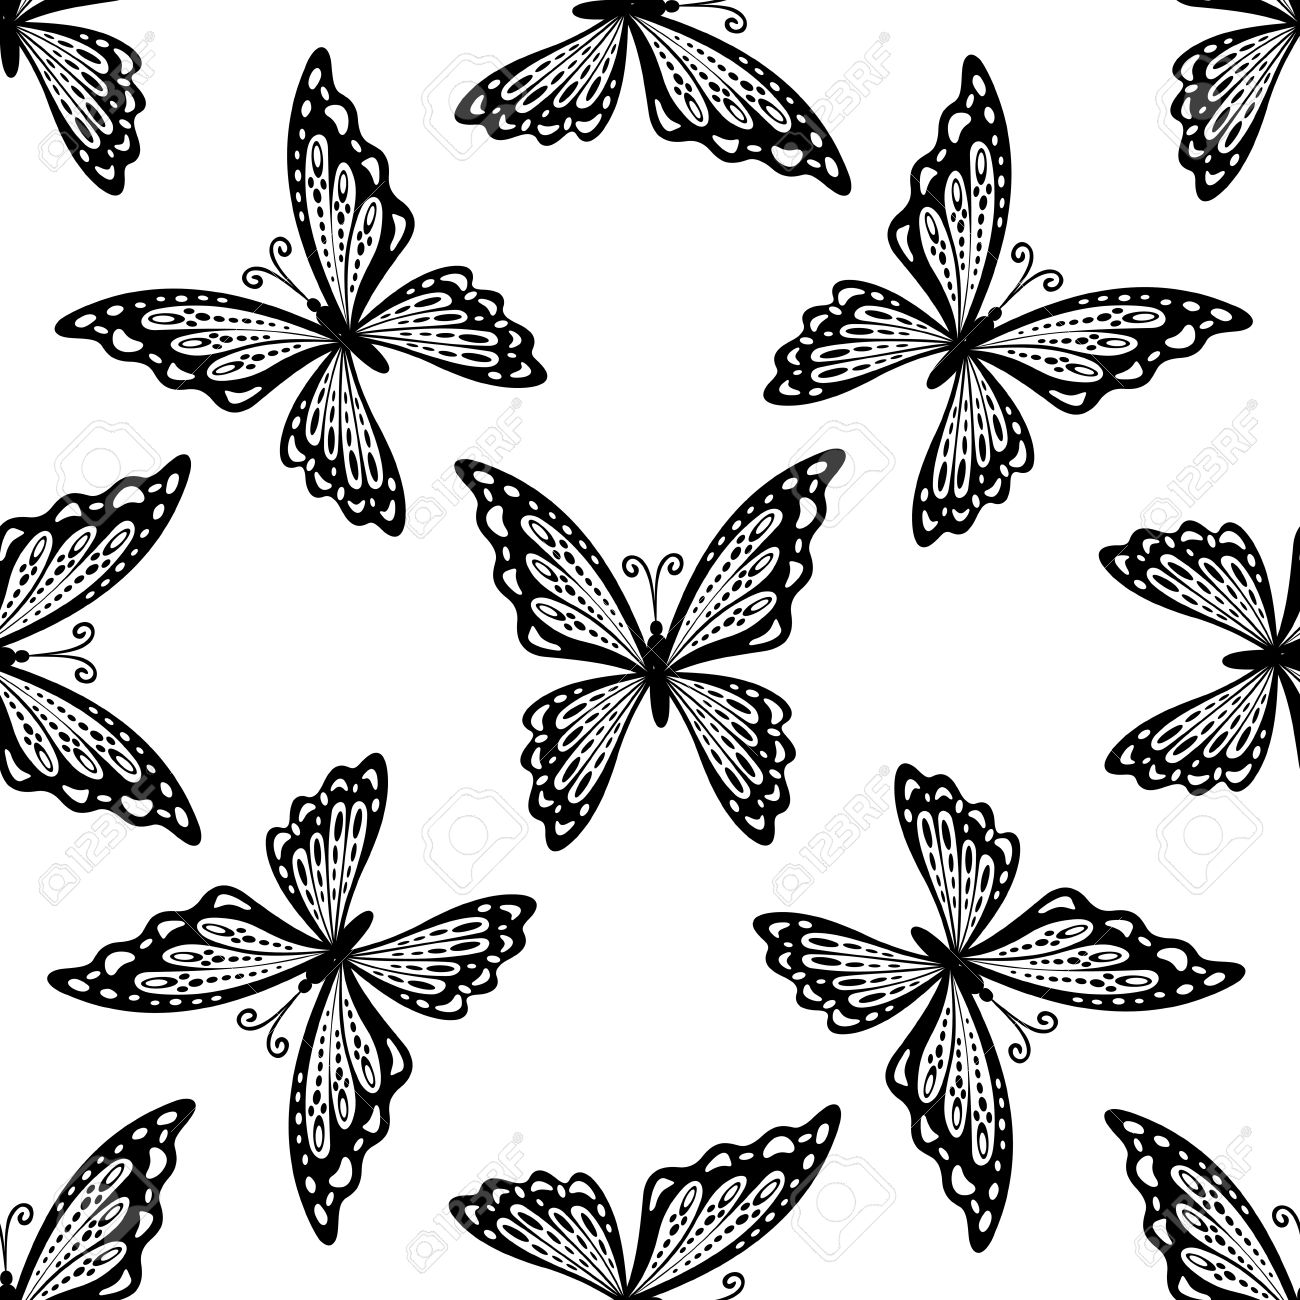 seamless pattern of delicate black and white butterflies with